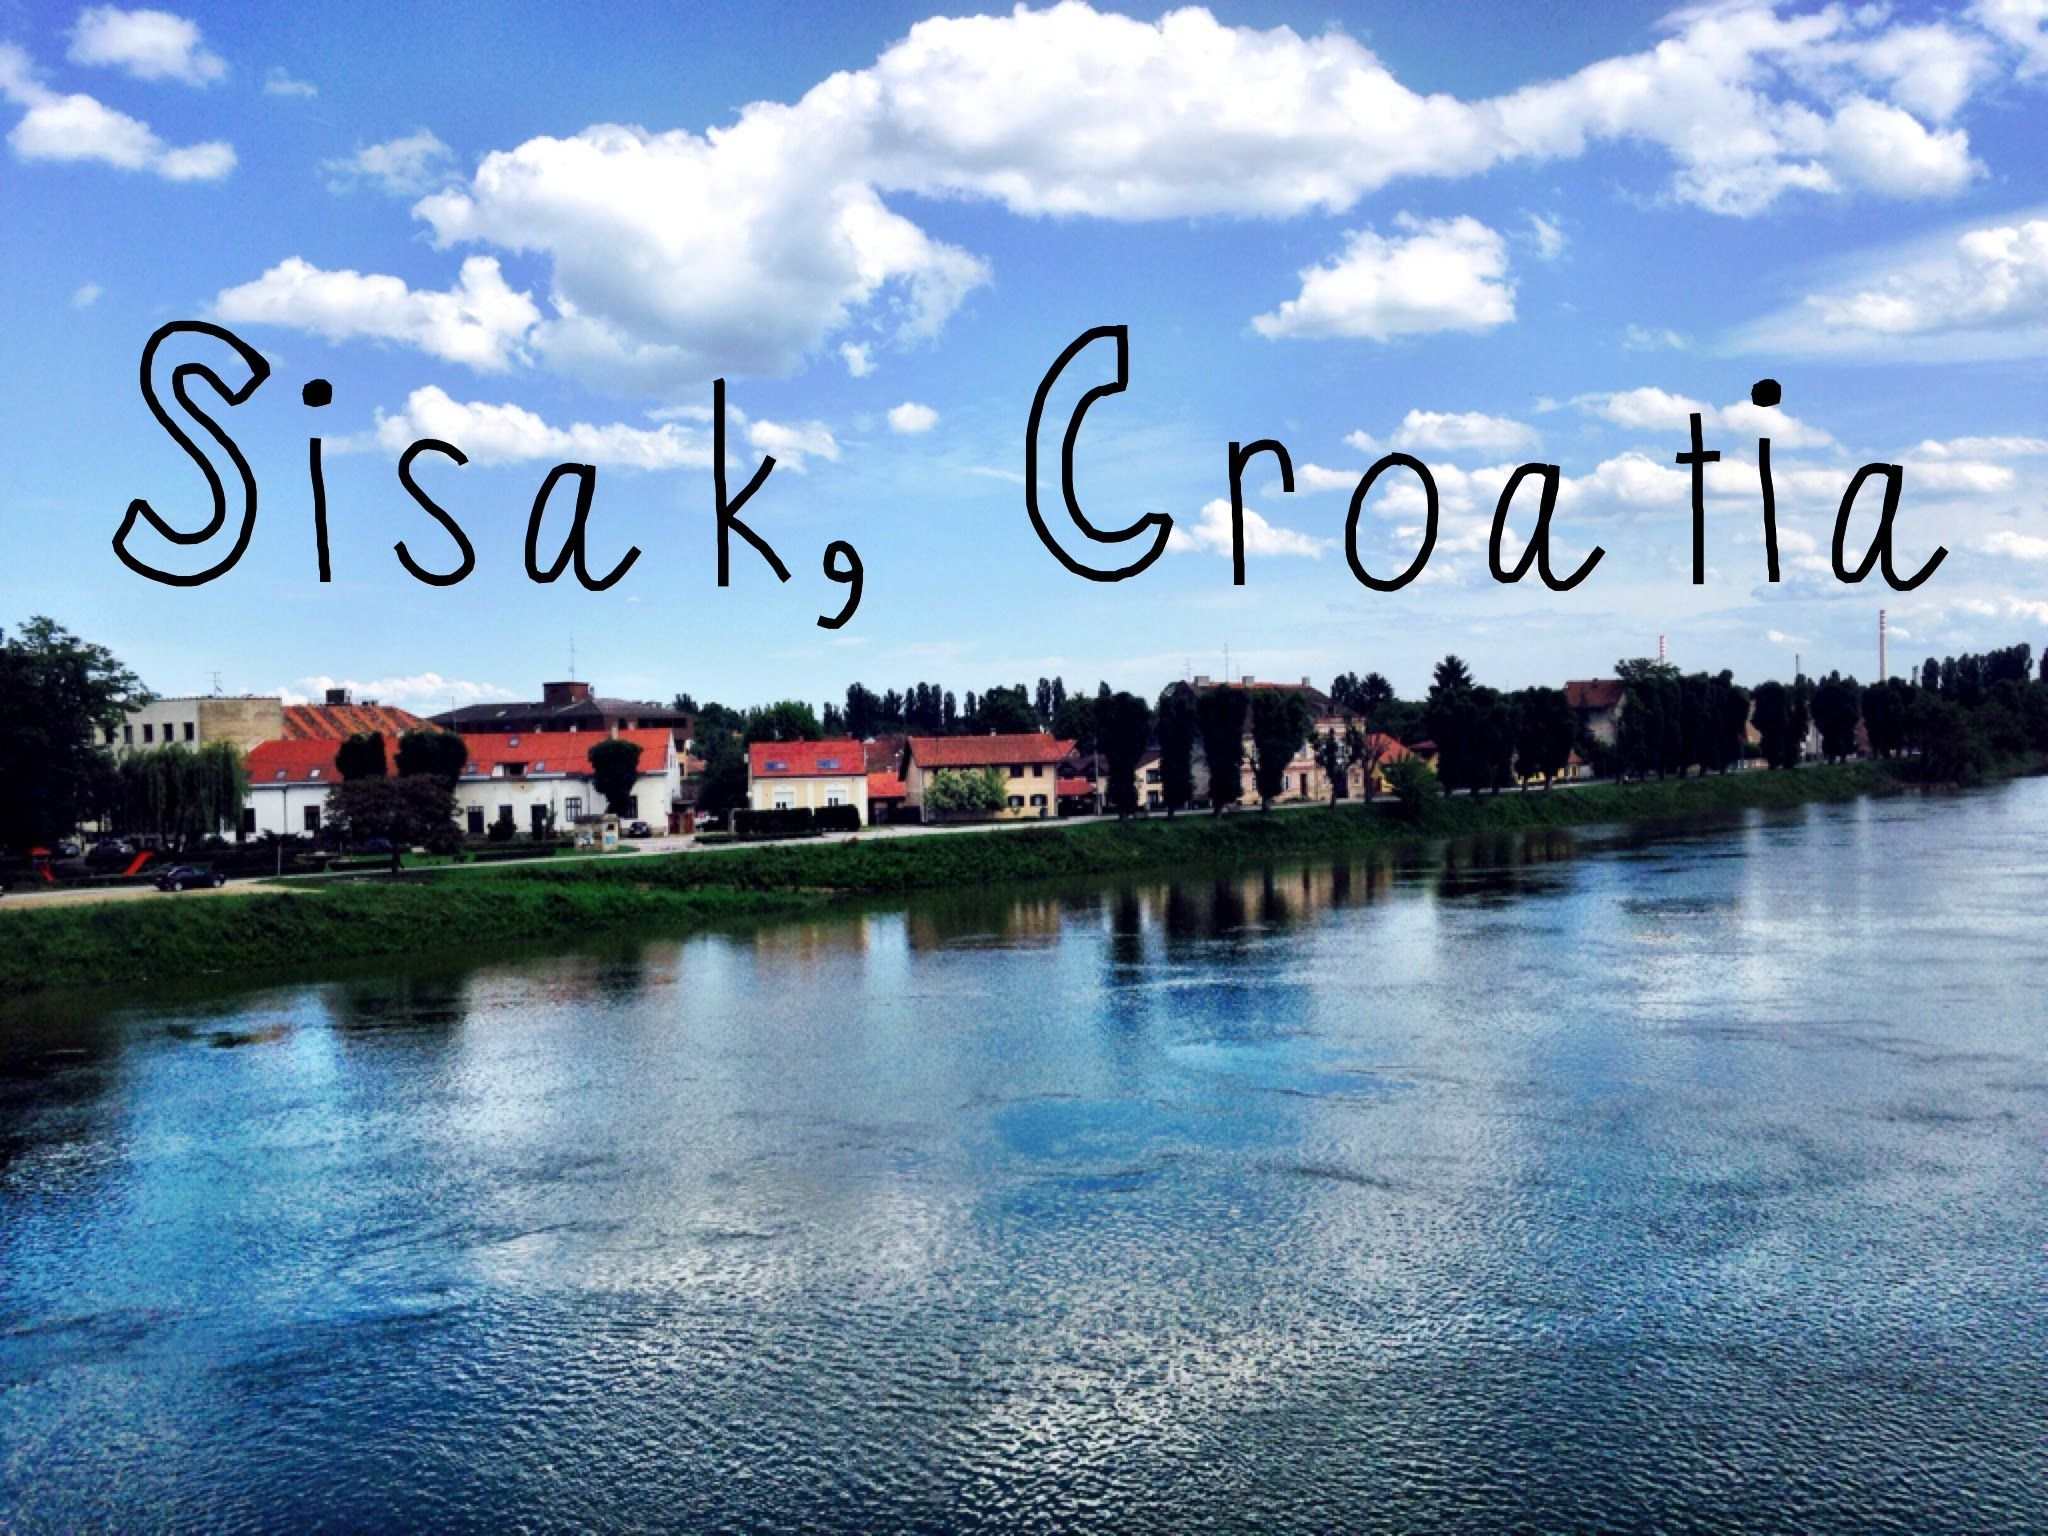 Sisak Croatia My Second Installment Of My Croatia Videos Croatia Travel Youtube Croatia Travel Youtube